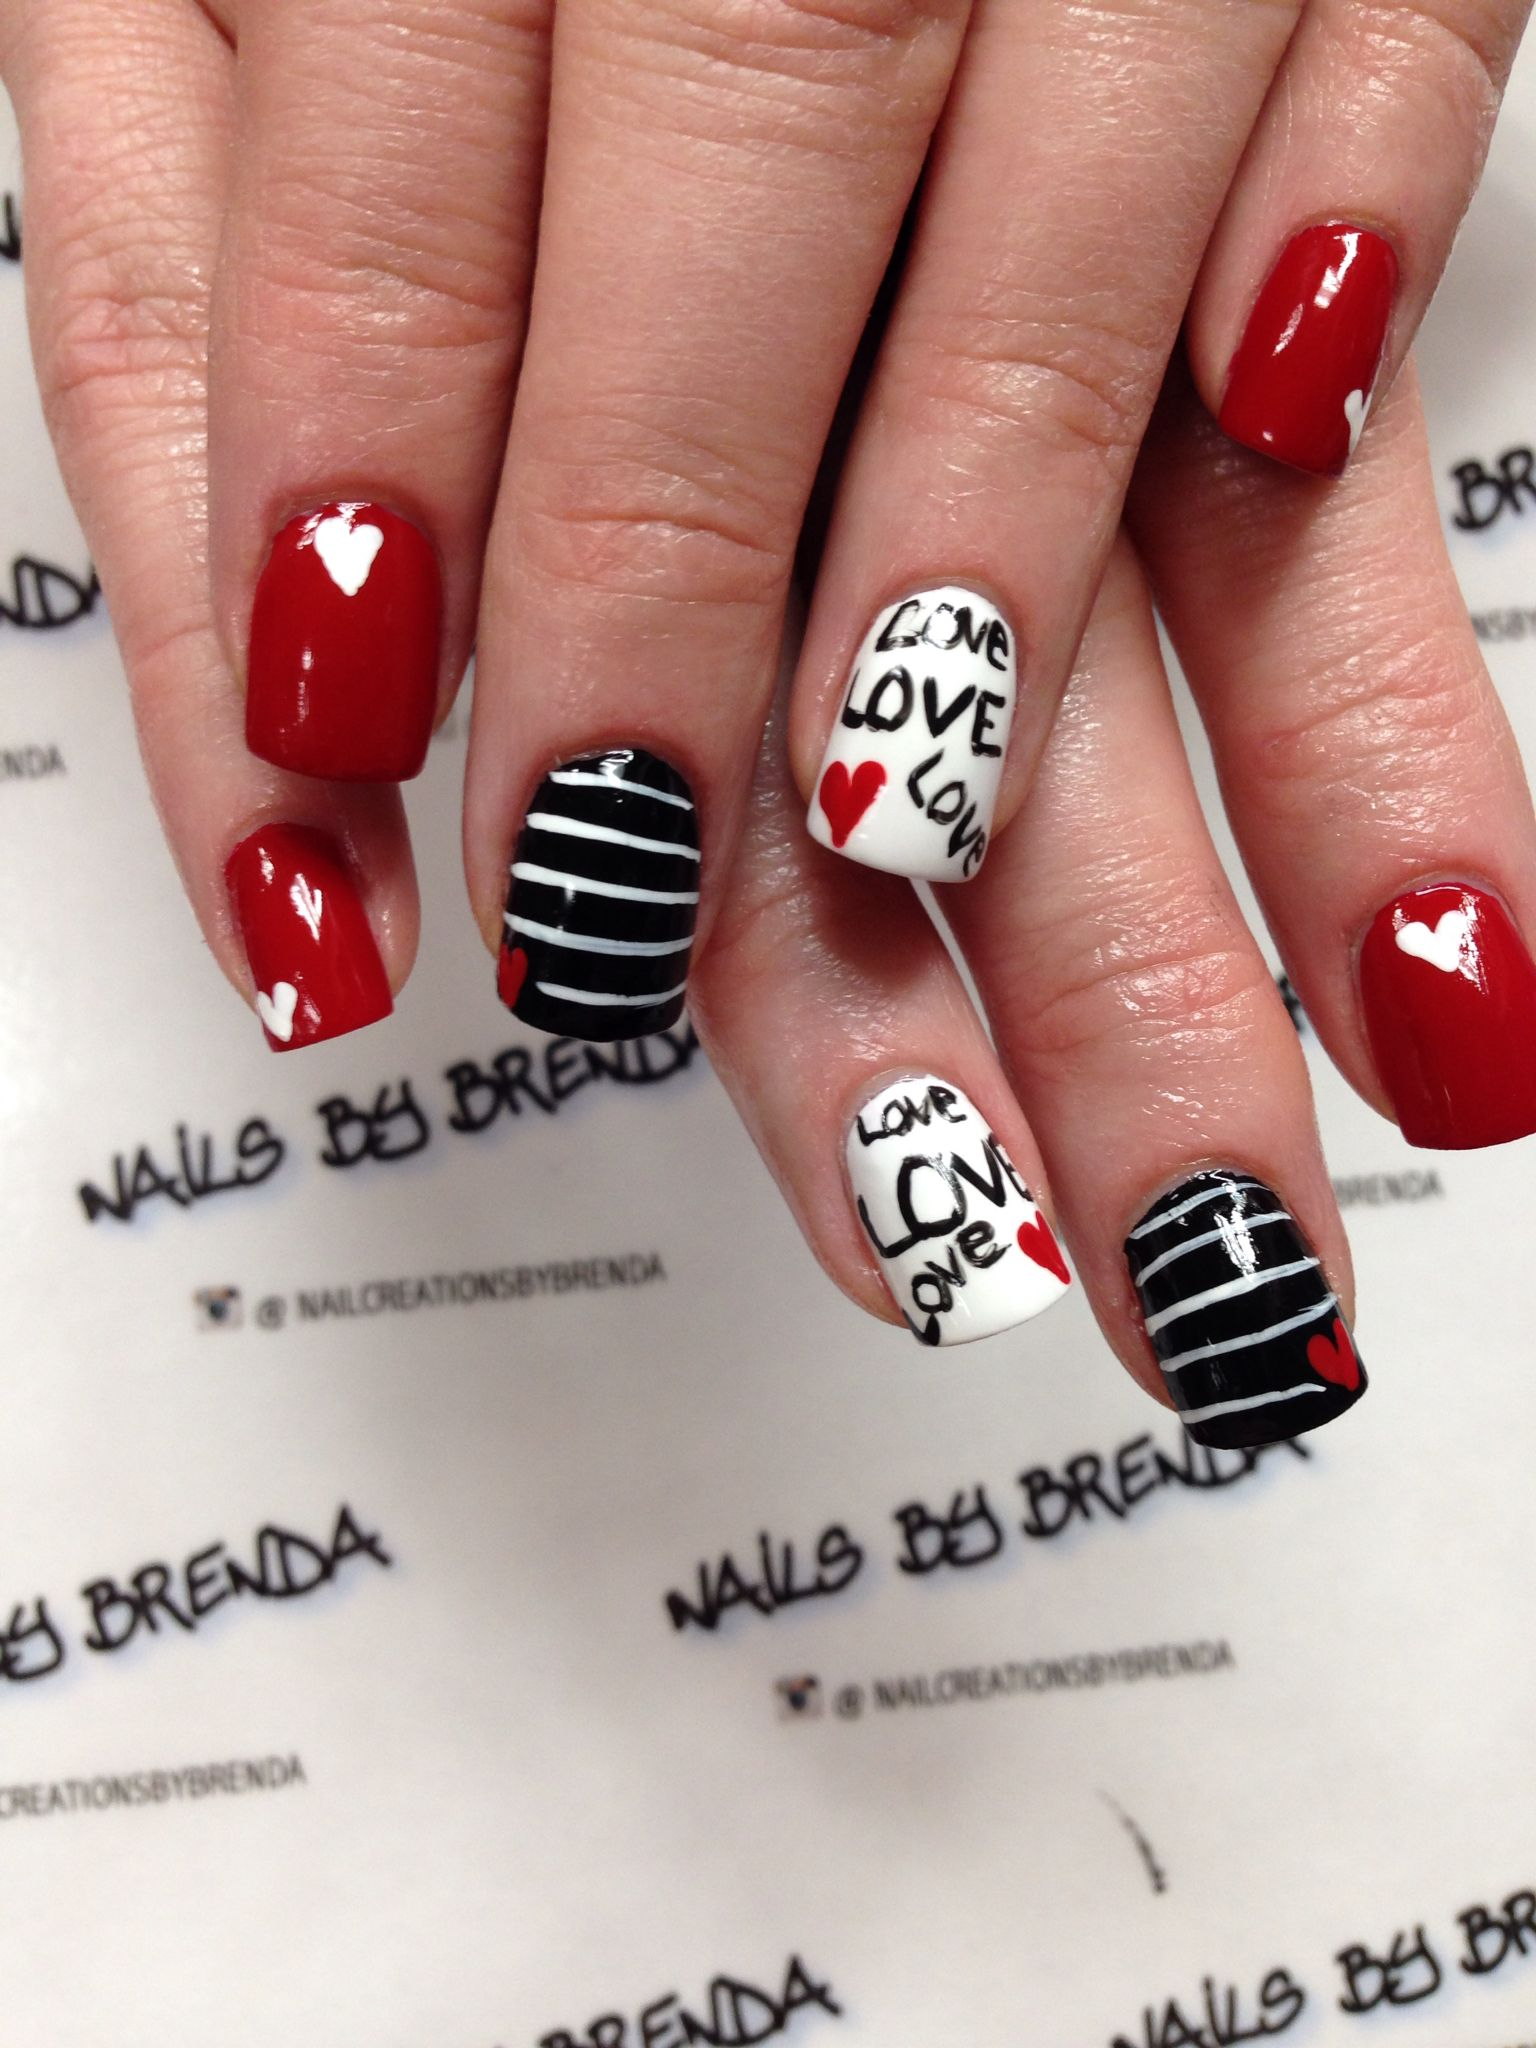 Pin by Nail Creations By Brenda on Valintine Nails | Pinterest ...